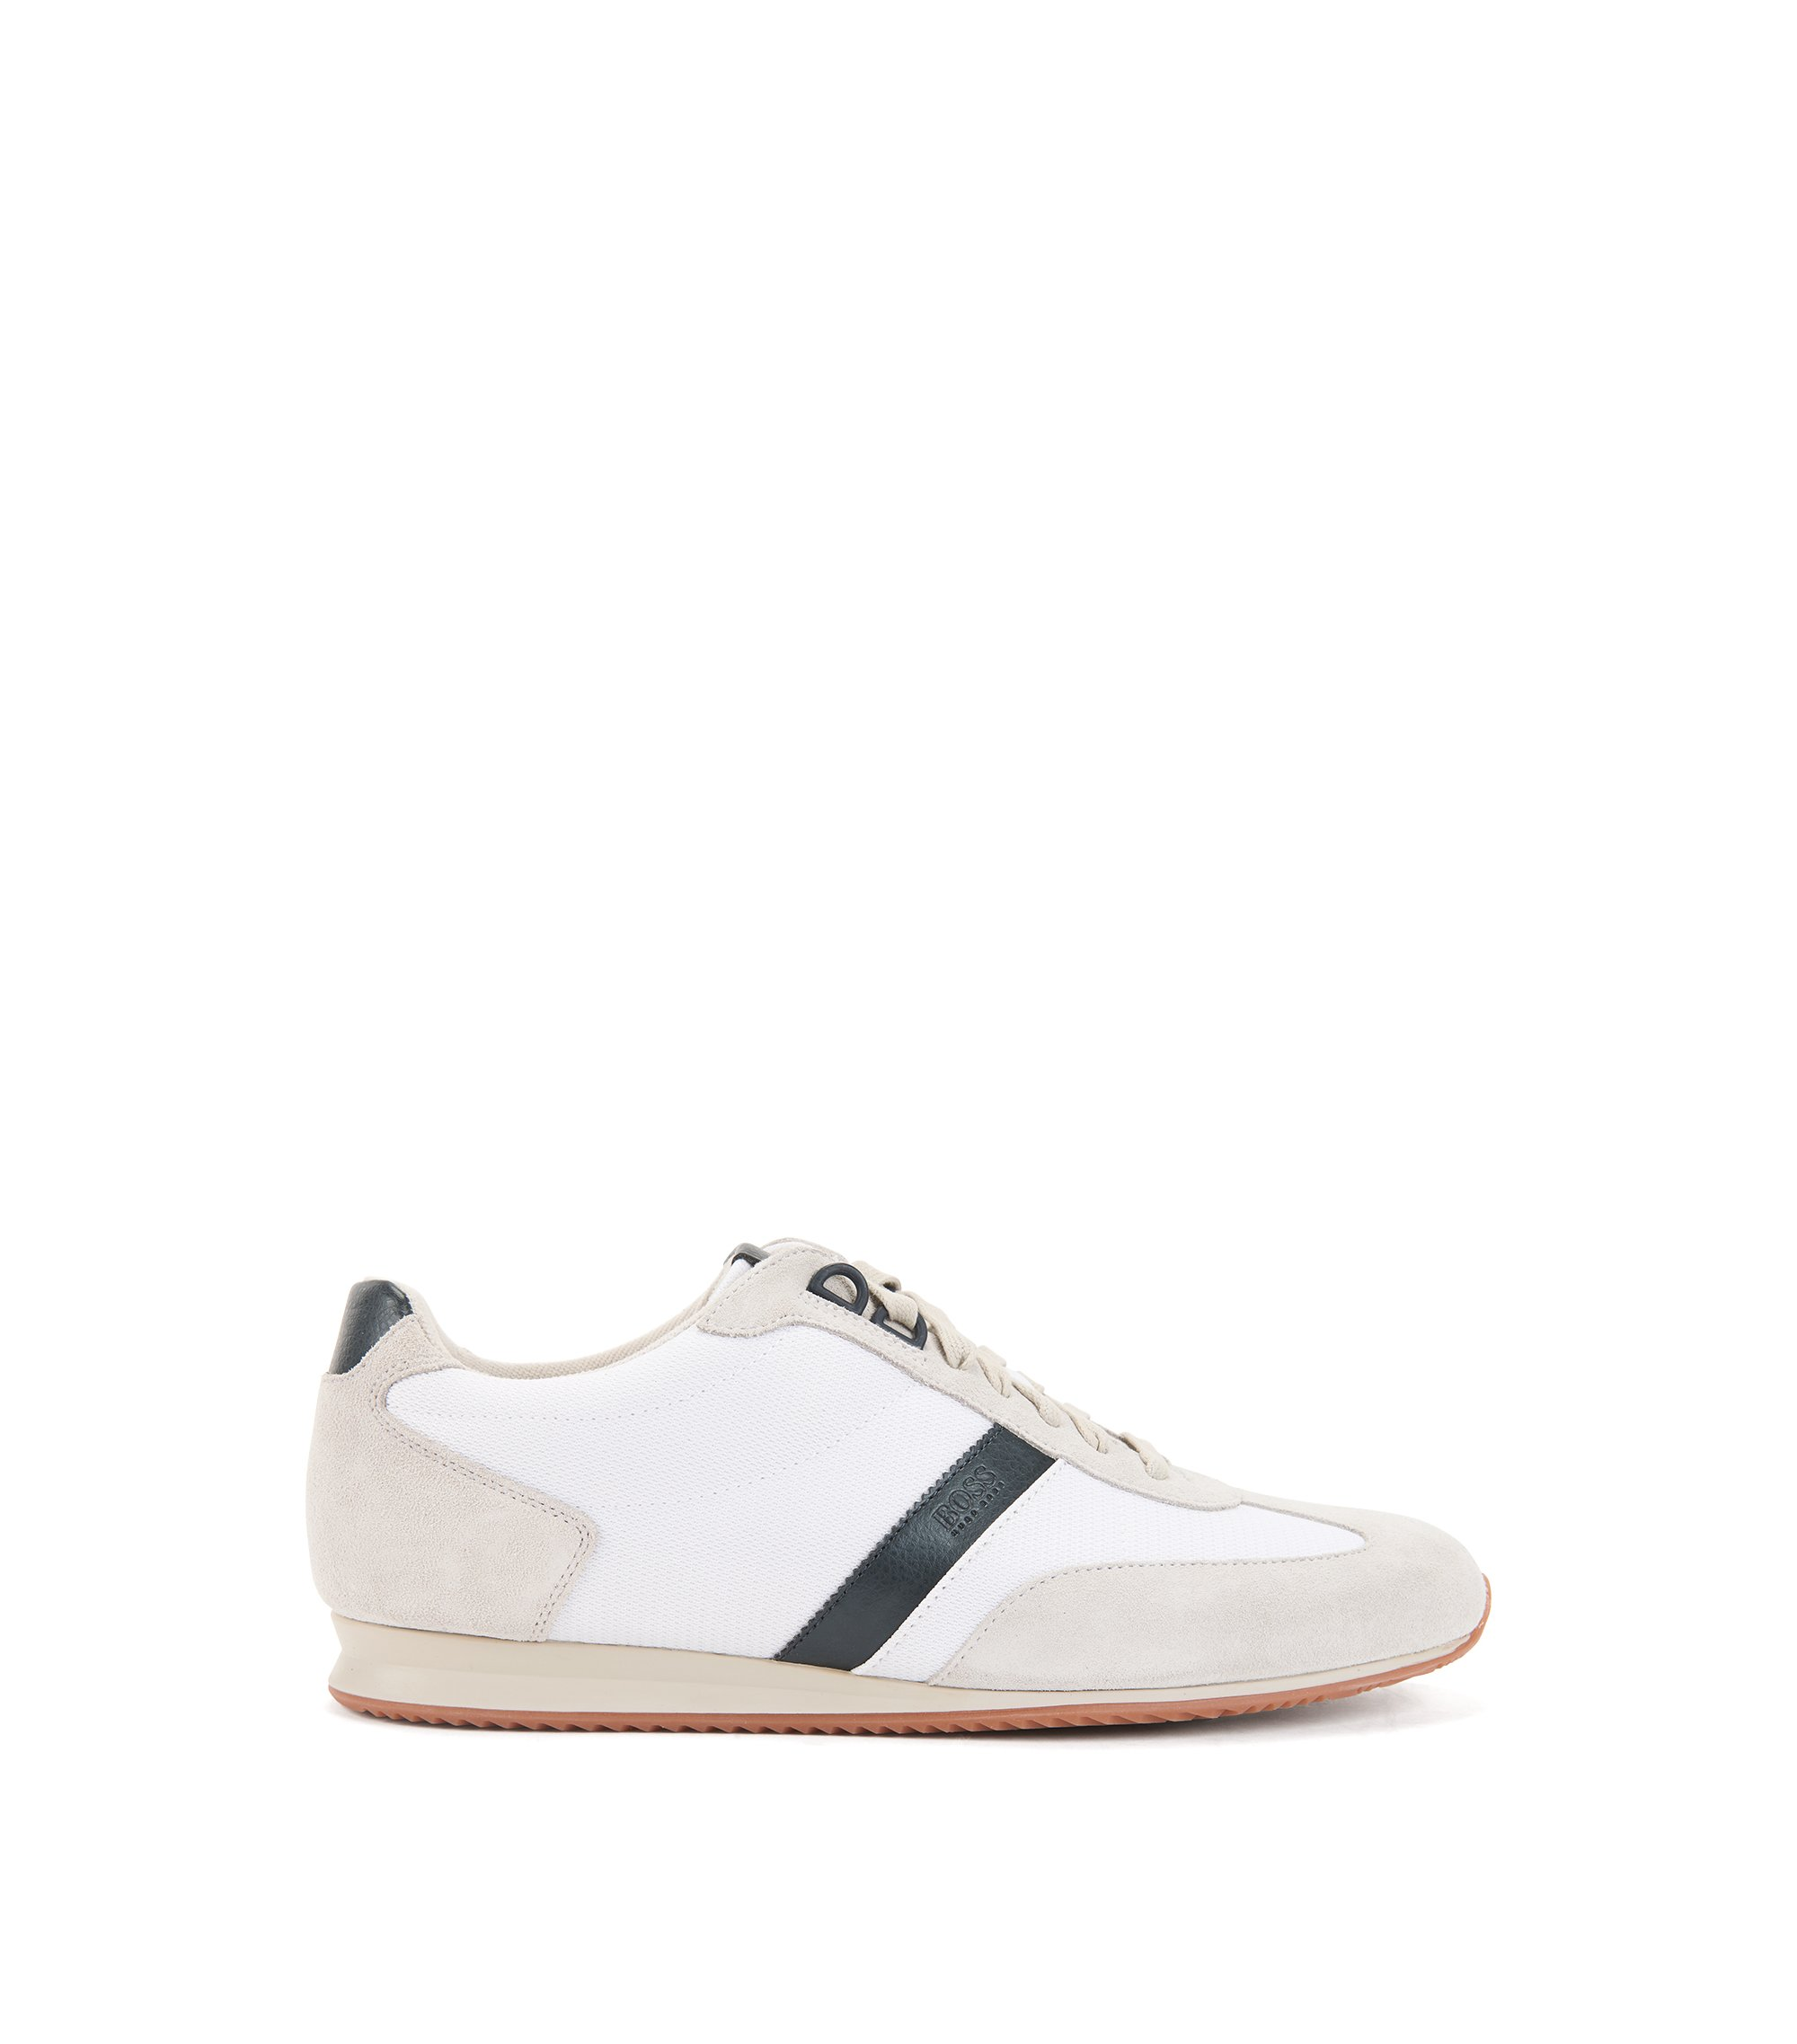 Low-top trainers with nylon and suede uppers, White